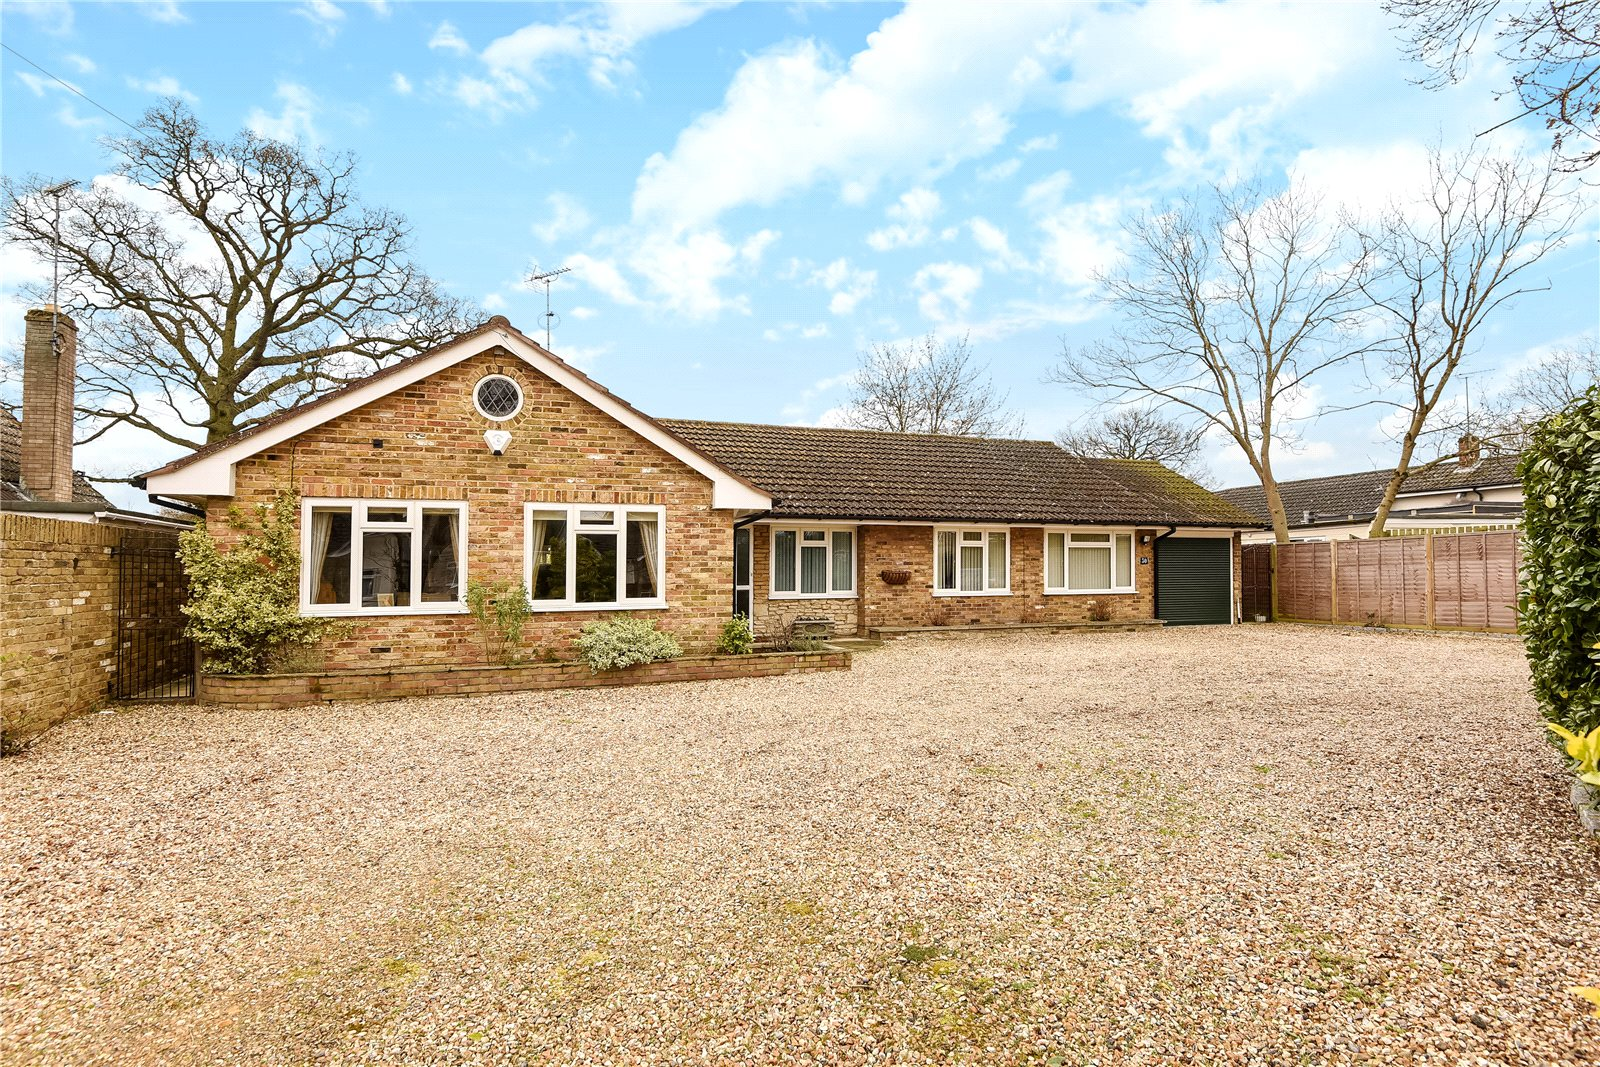 4 Bedrooms Detached Bungalow for sale in Arbor Lane, Winnersh, Wokingham, Berkshire, RG41